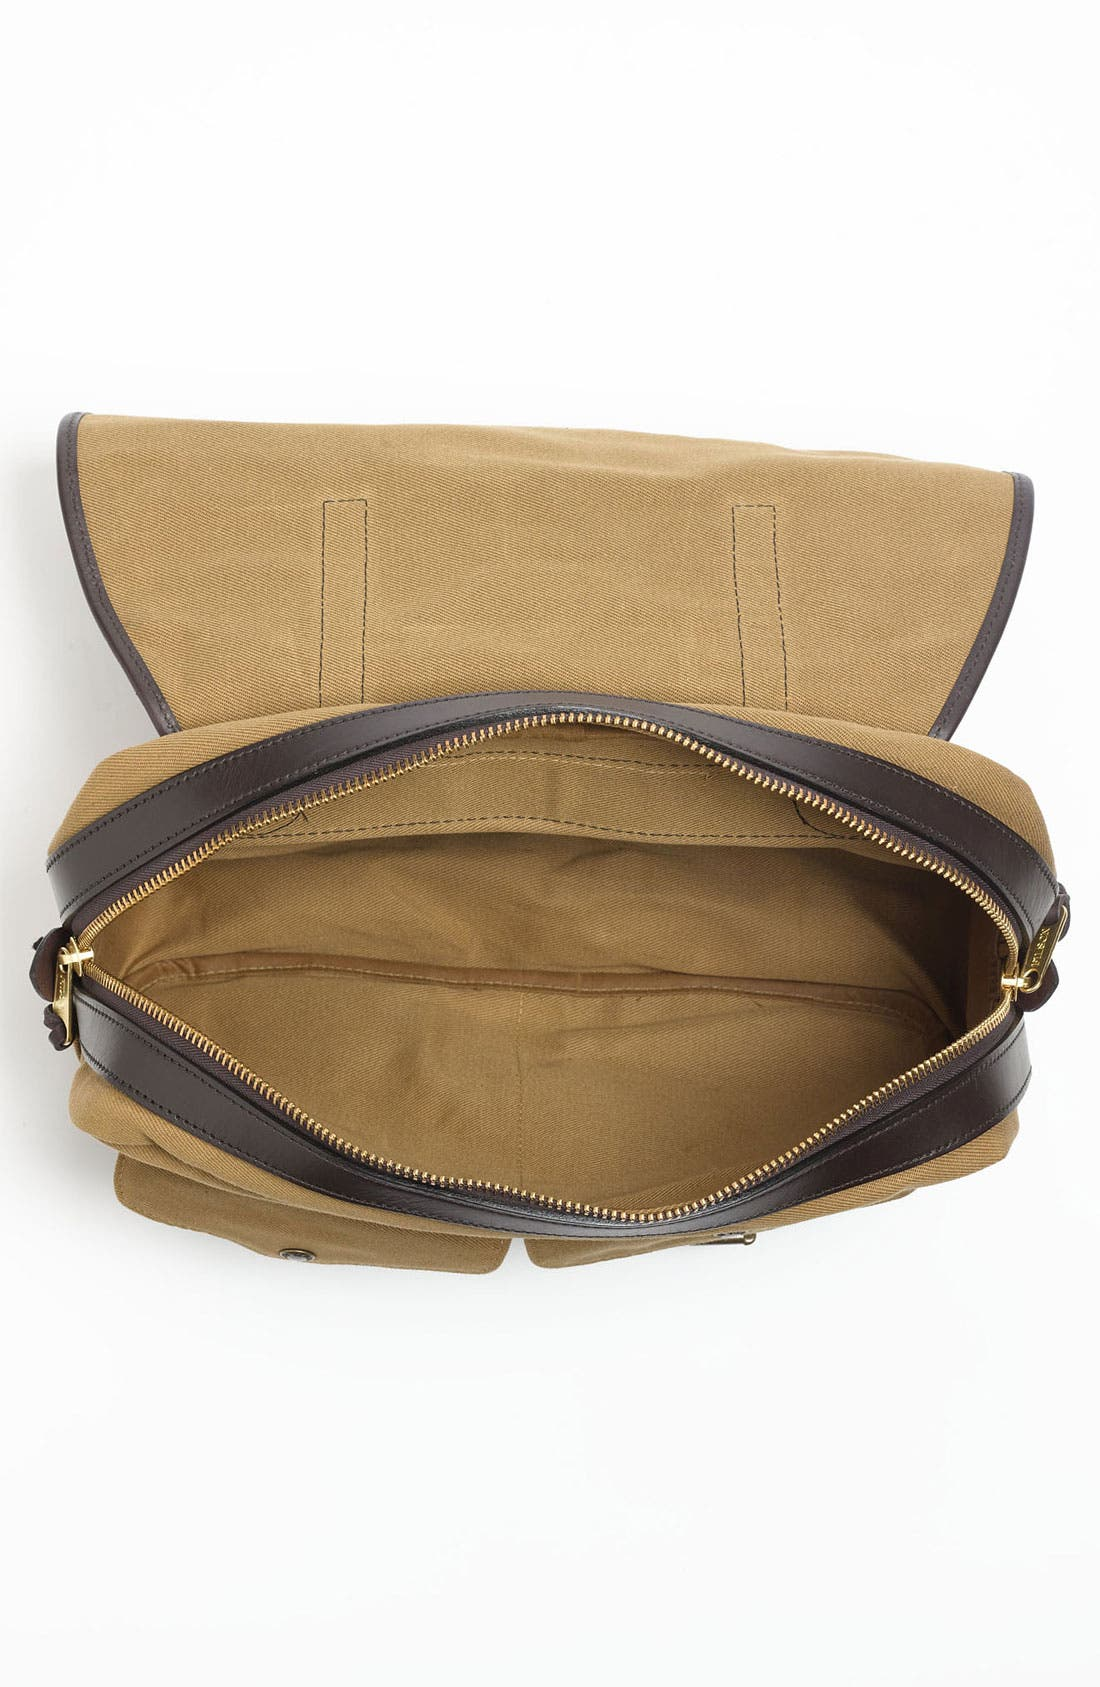 Alternate Image 3  - Filson Small Carry-On Bag (16 Inch)